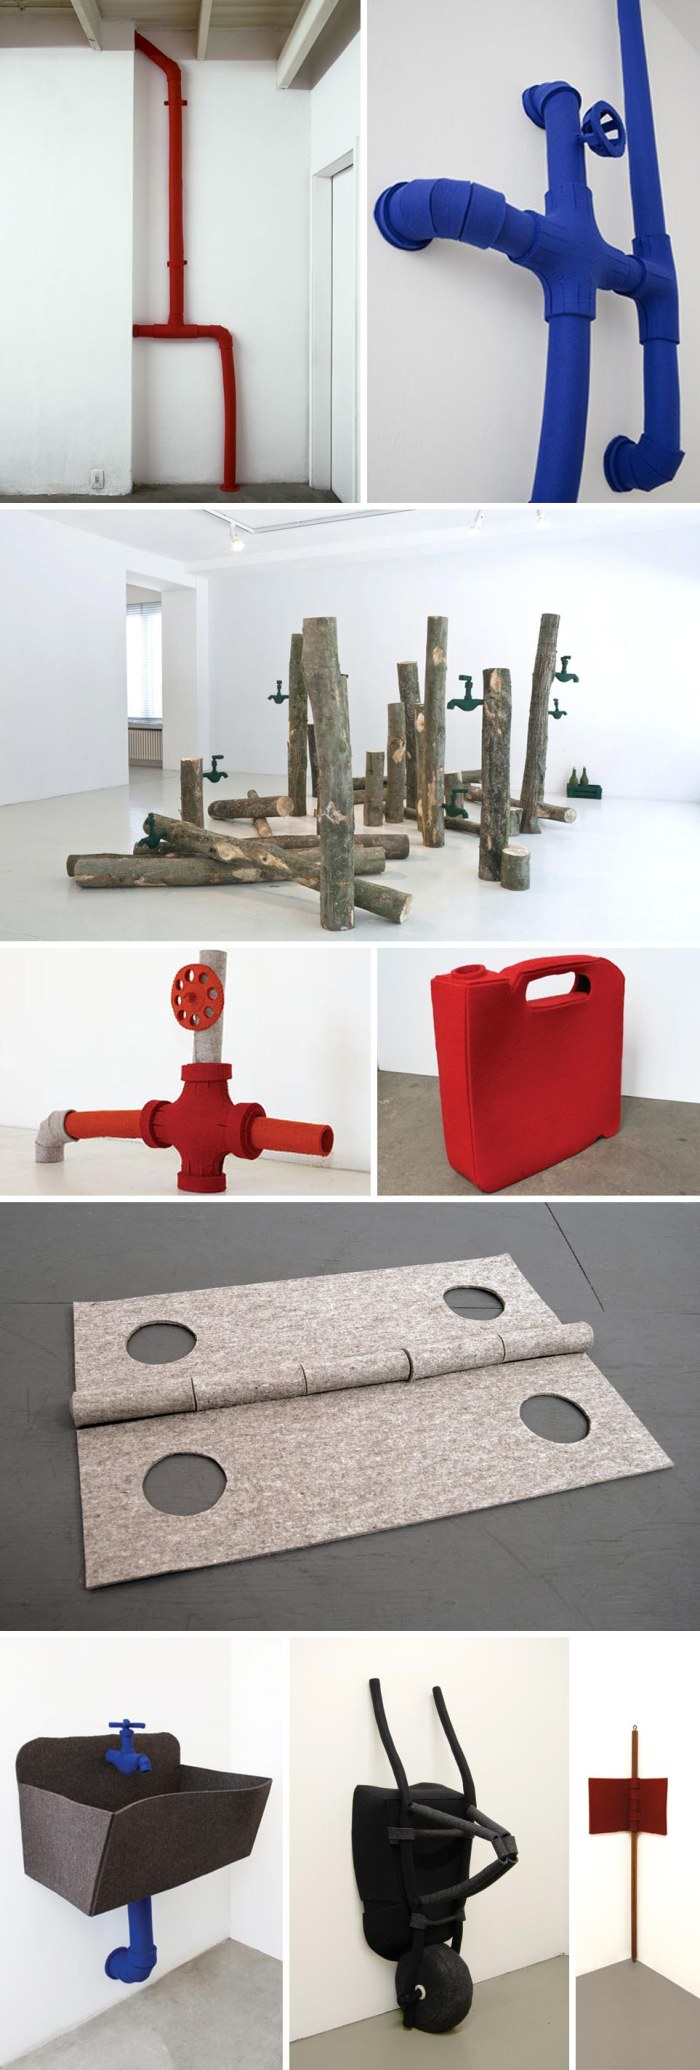 Soft sculptures made with felt of industrial objects such as pipes, faucets, hinges, and tools by Johanna Unzueta, Chilean artist